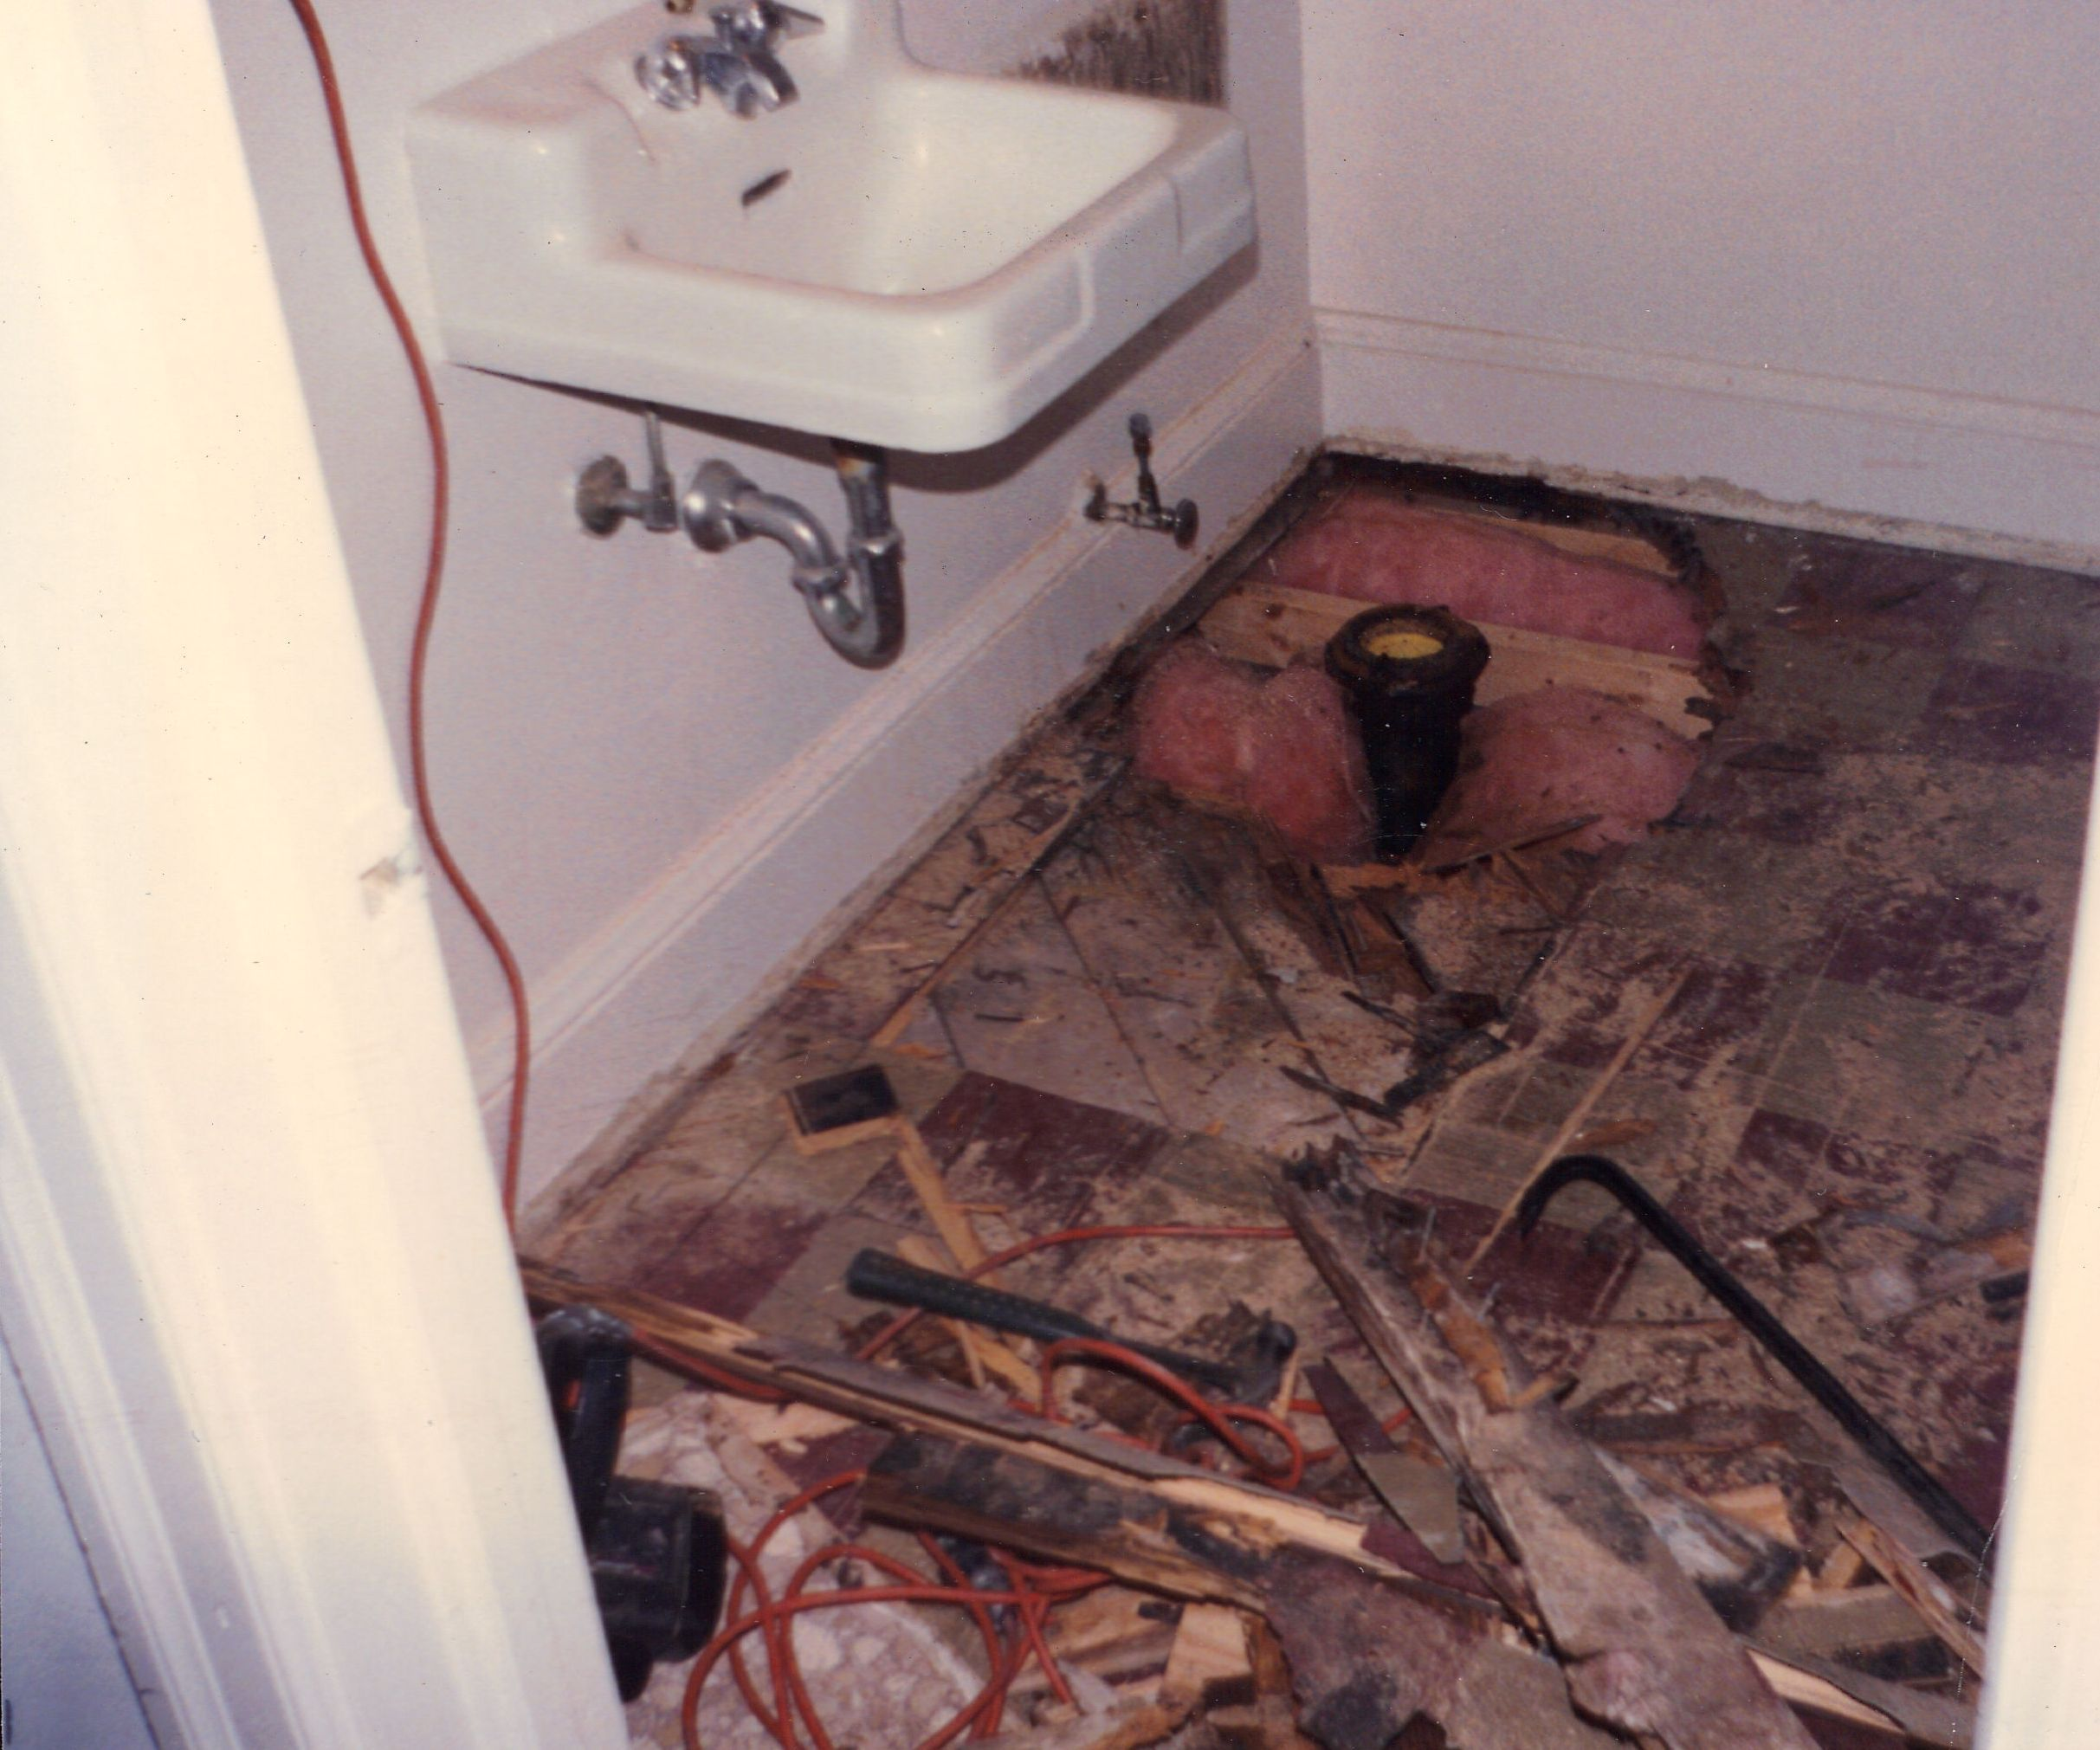 Rotten Bathroom Floor   Google Search. House Repair